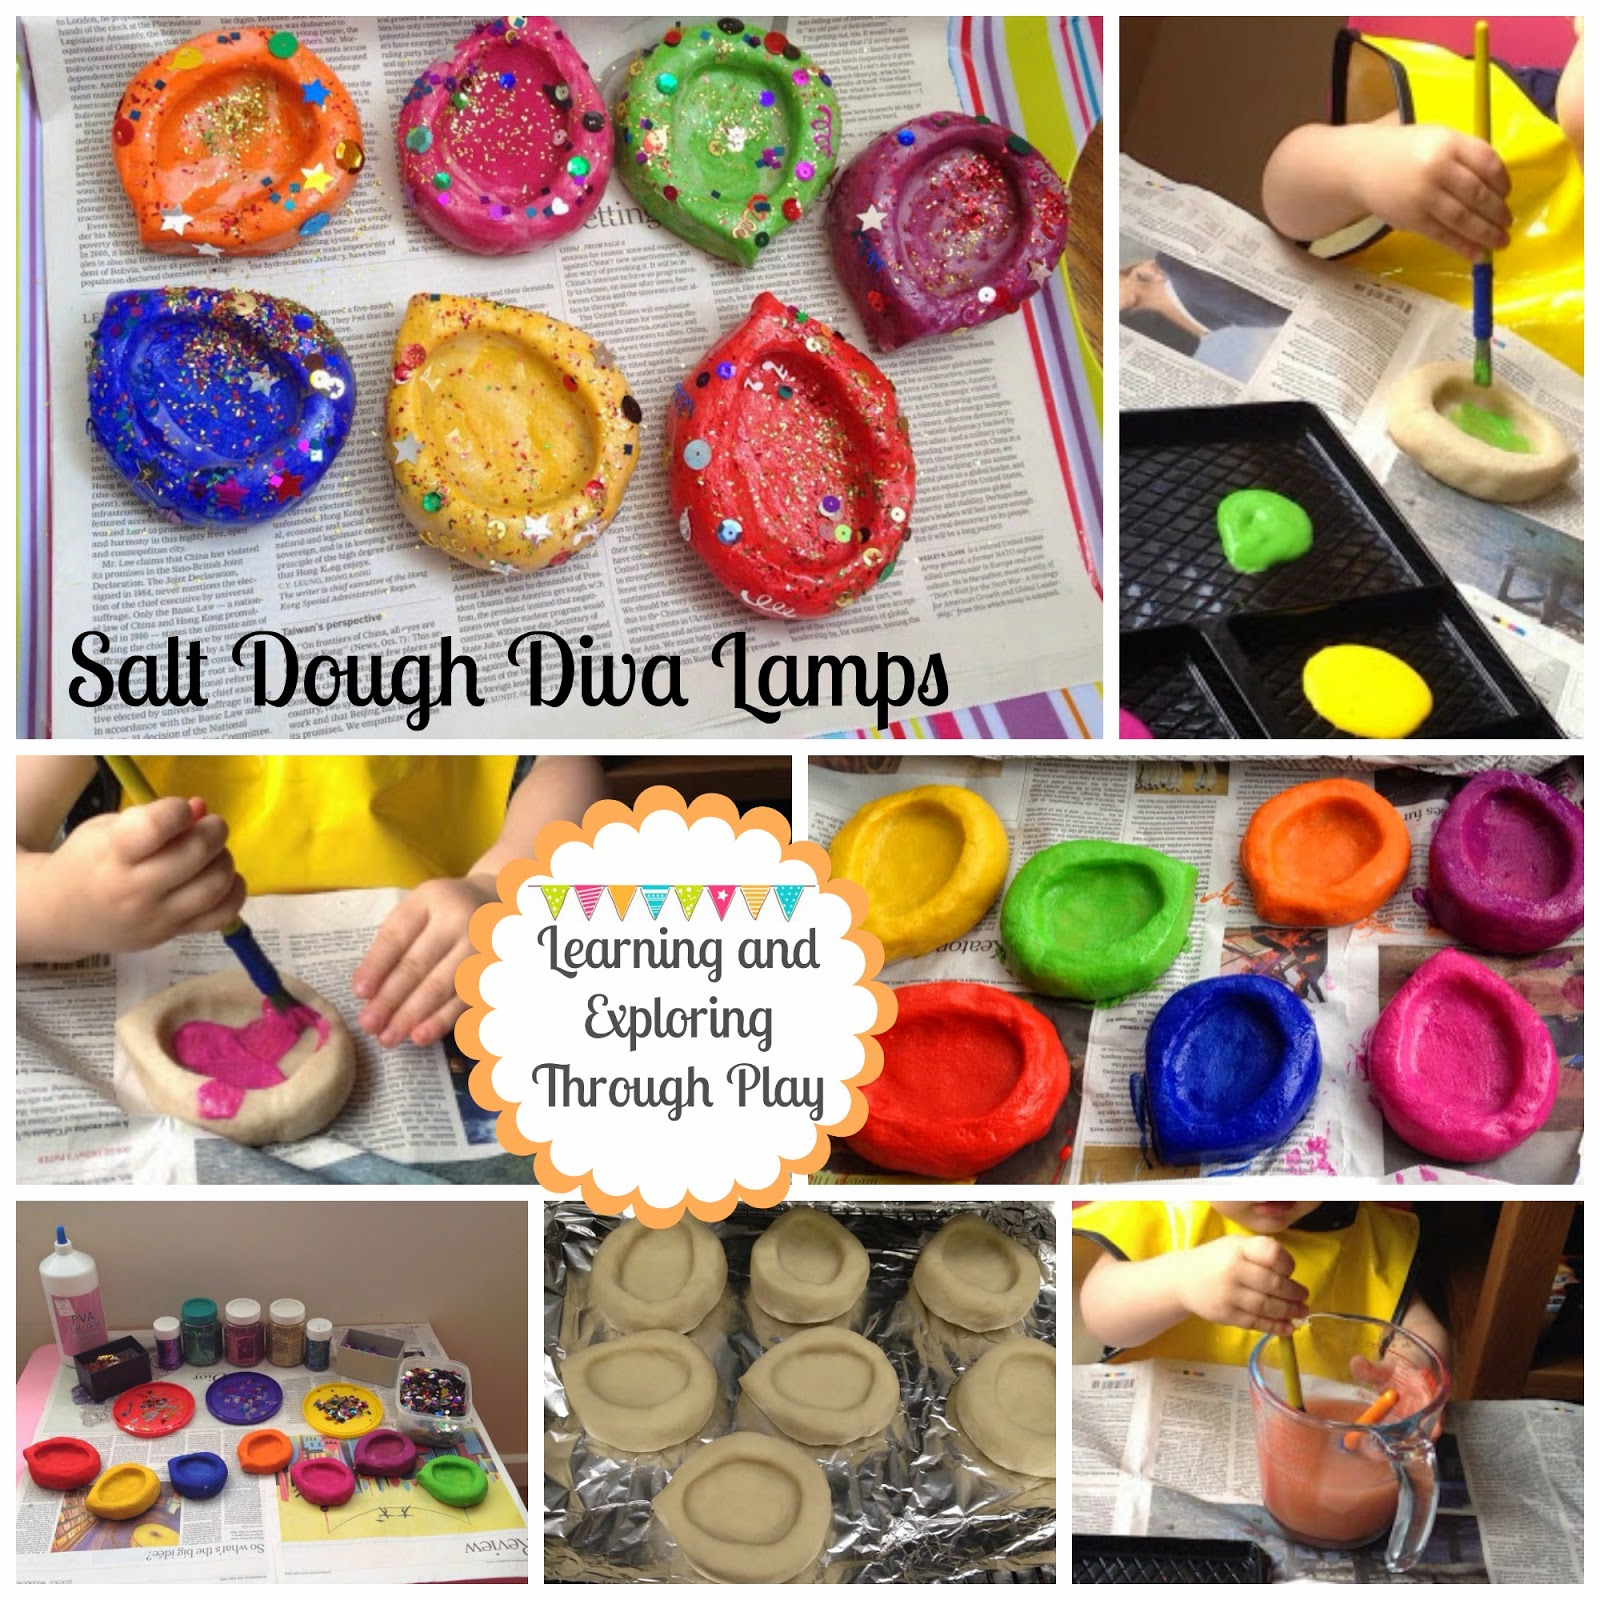 Learning and Exploring Through Play: Salt Dough Diva Lamps